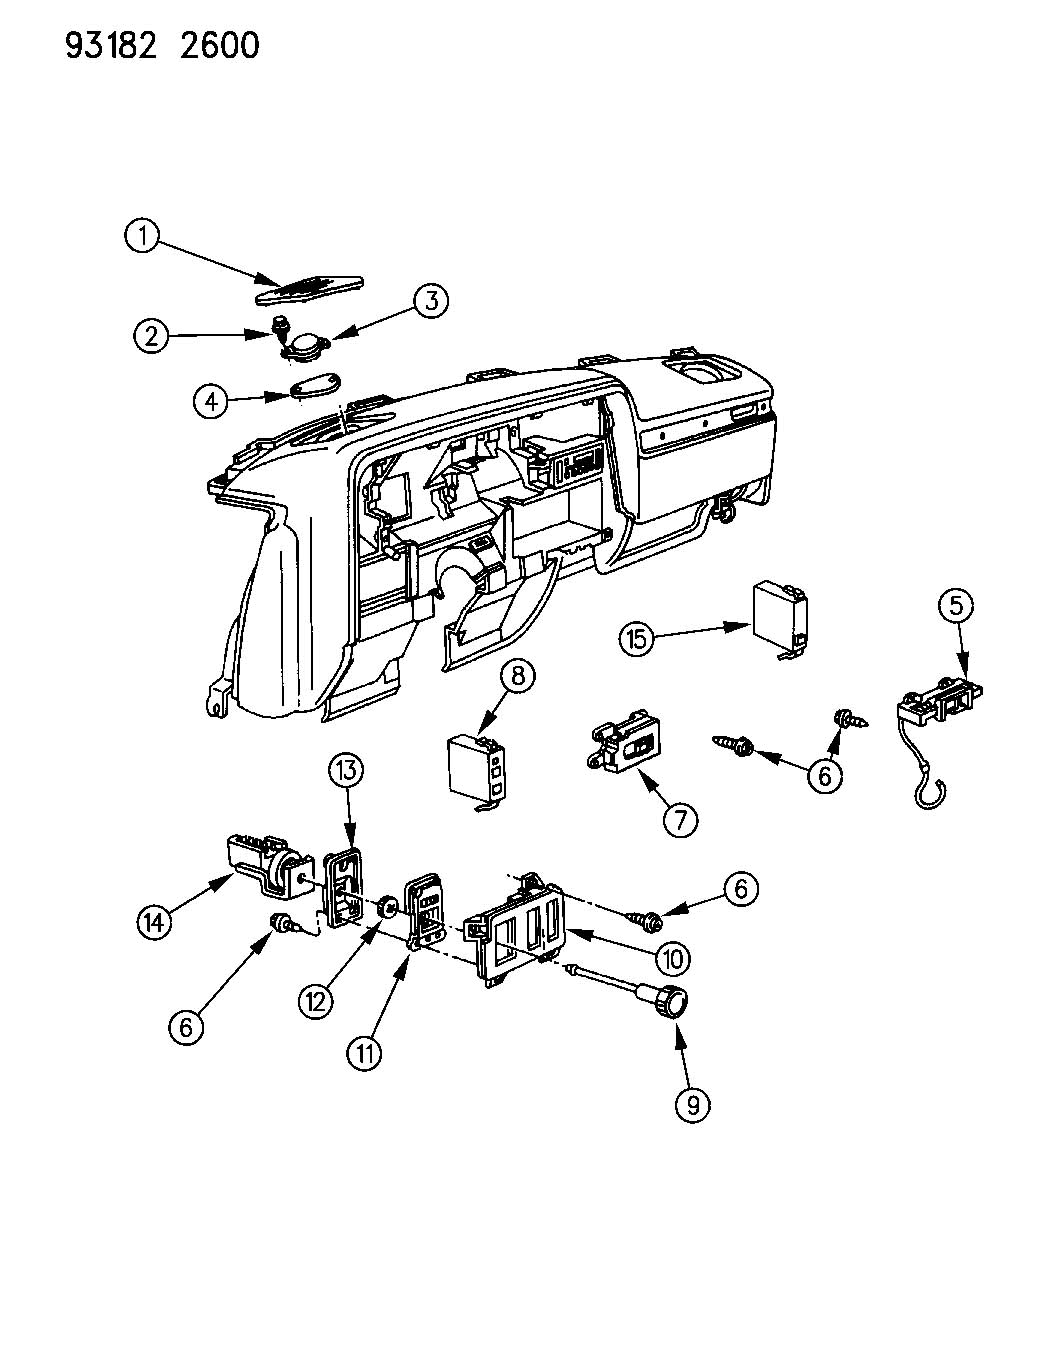 2004 Volvo Xc90 Fuel Filter Location Auto Electrical Wiring Diagram